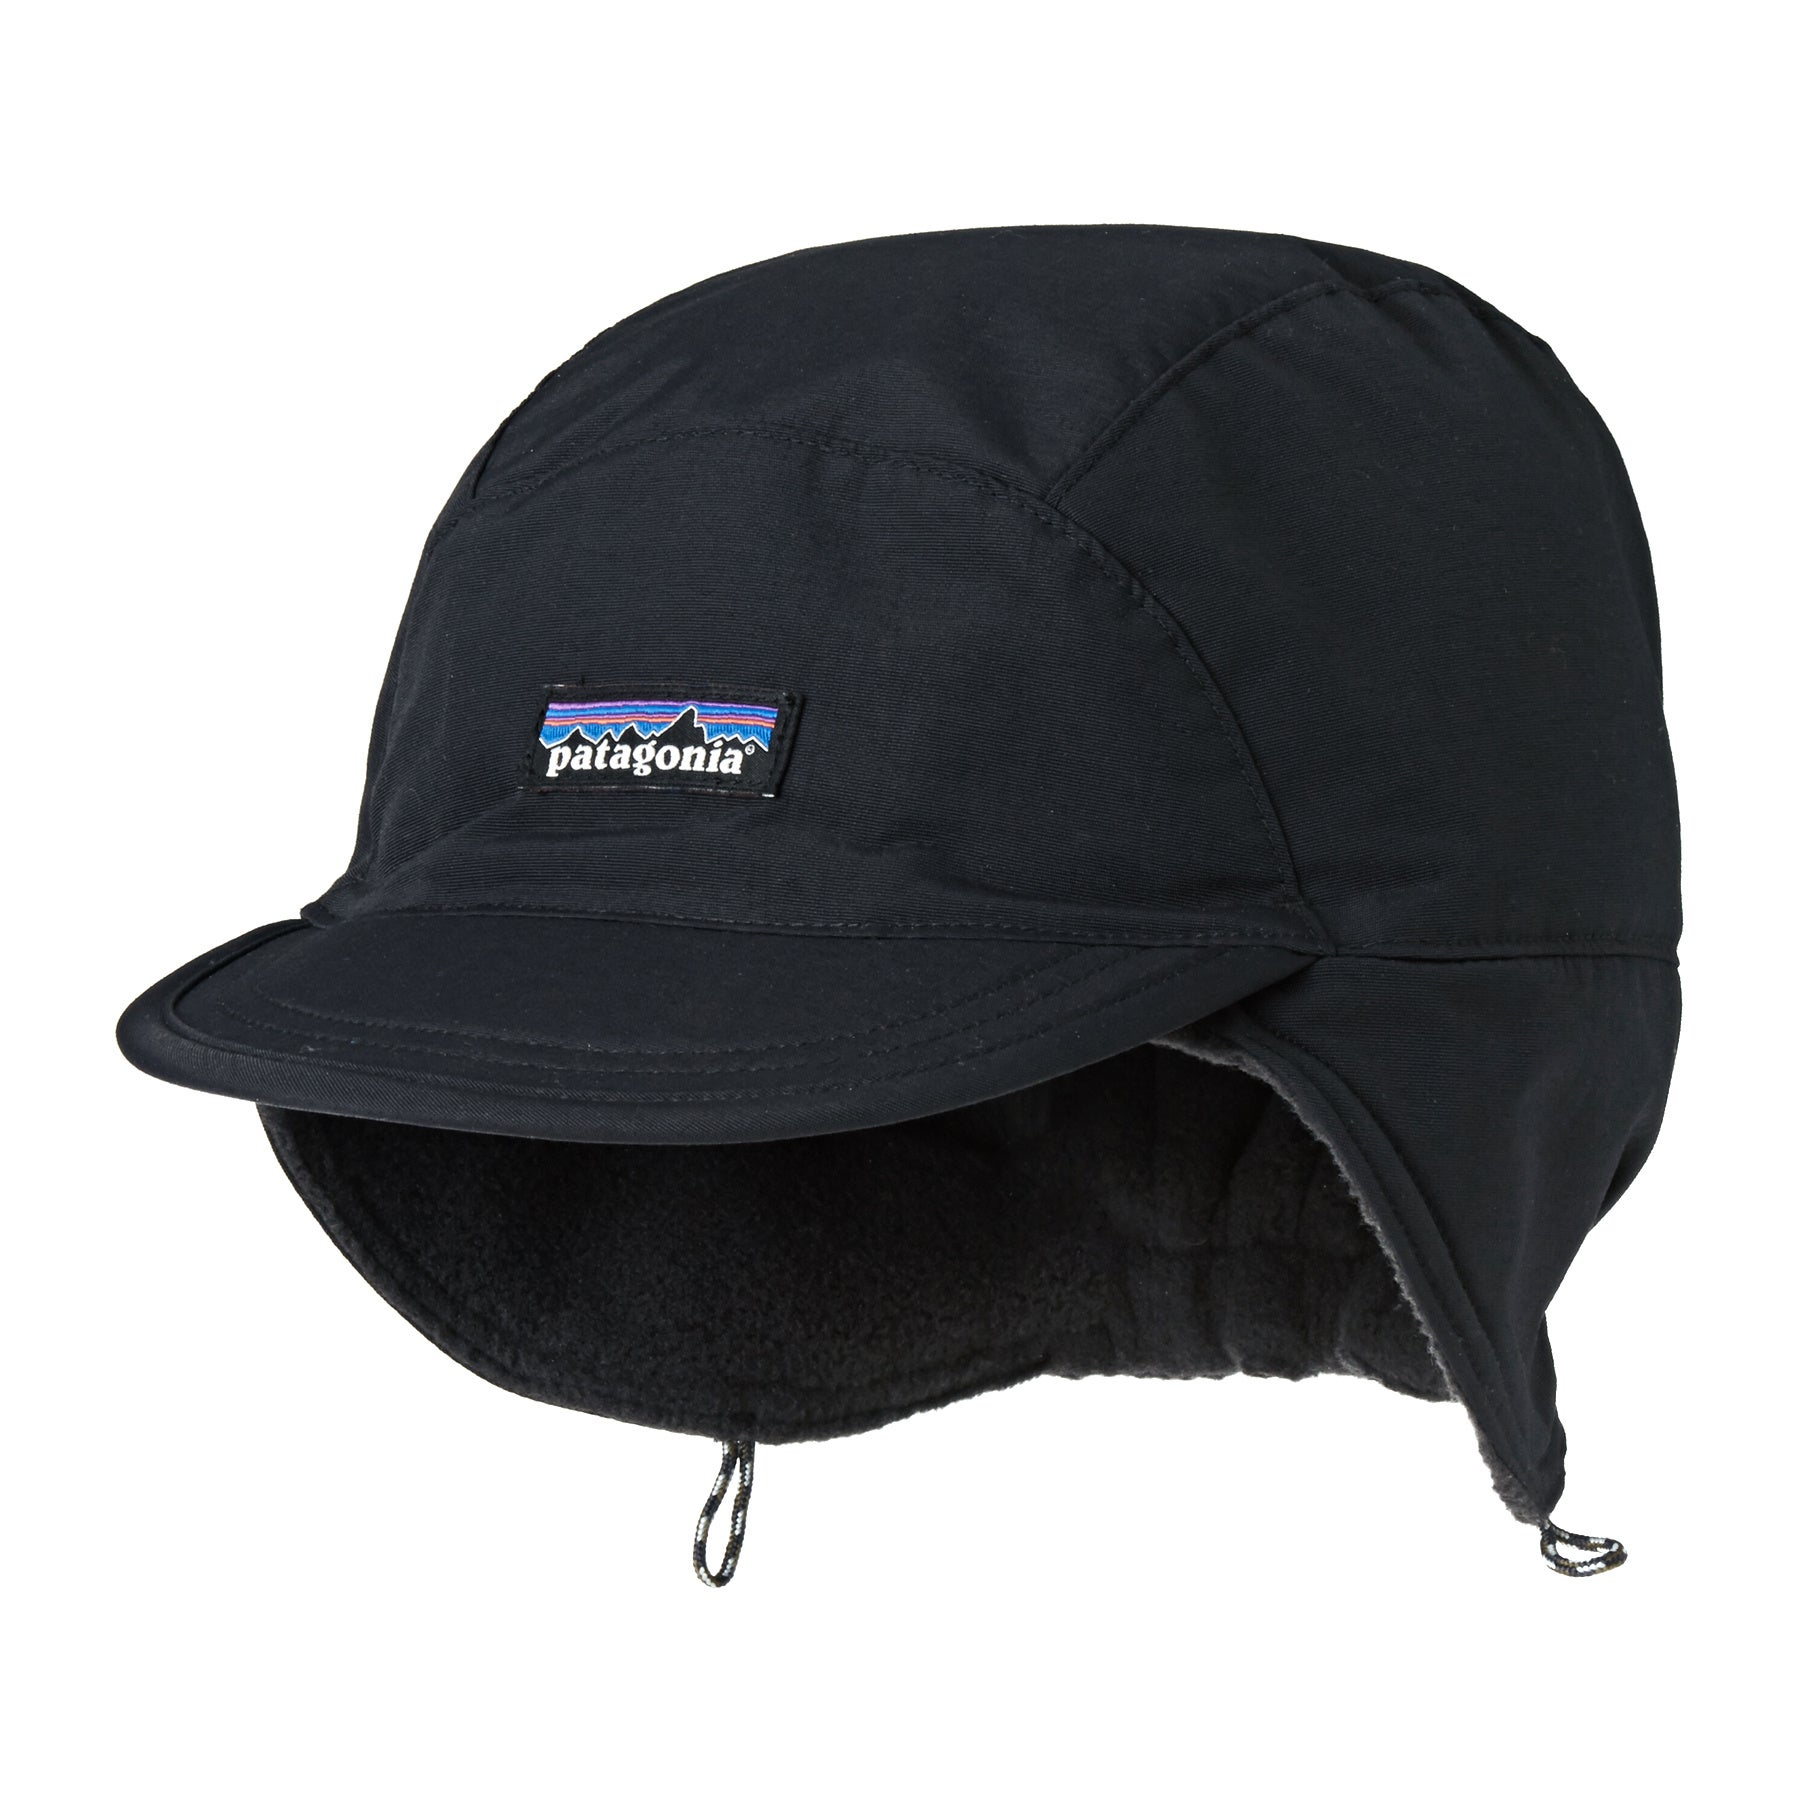 7c05810a320 Patagonia Shelled Synch Duckbill Cap available from Surfdome